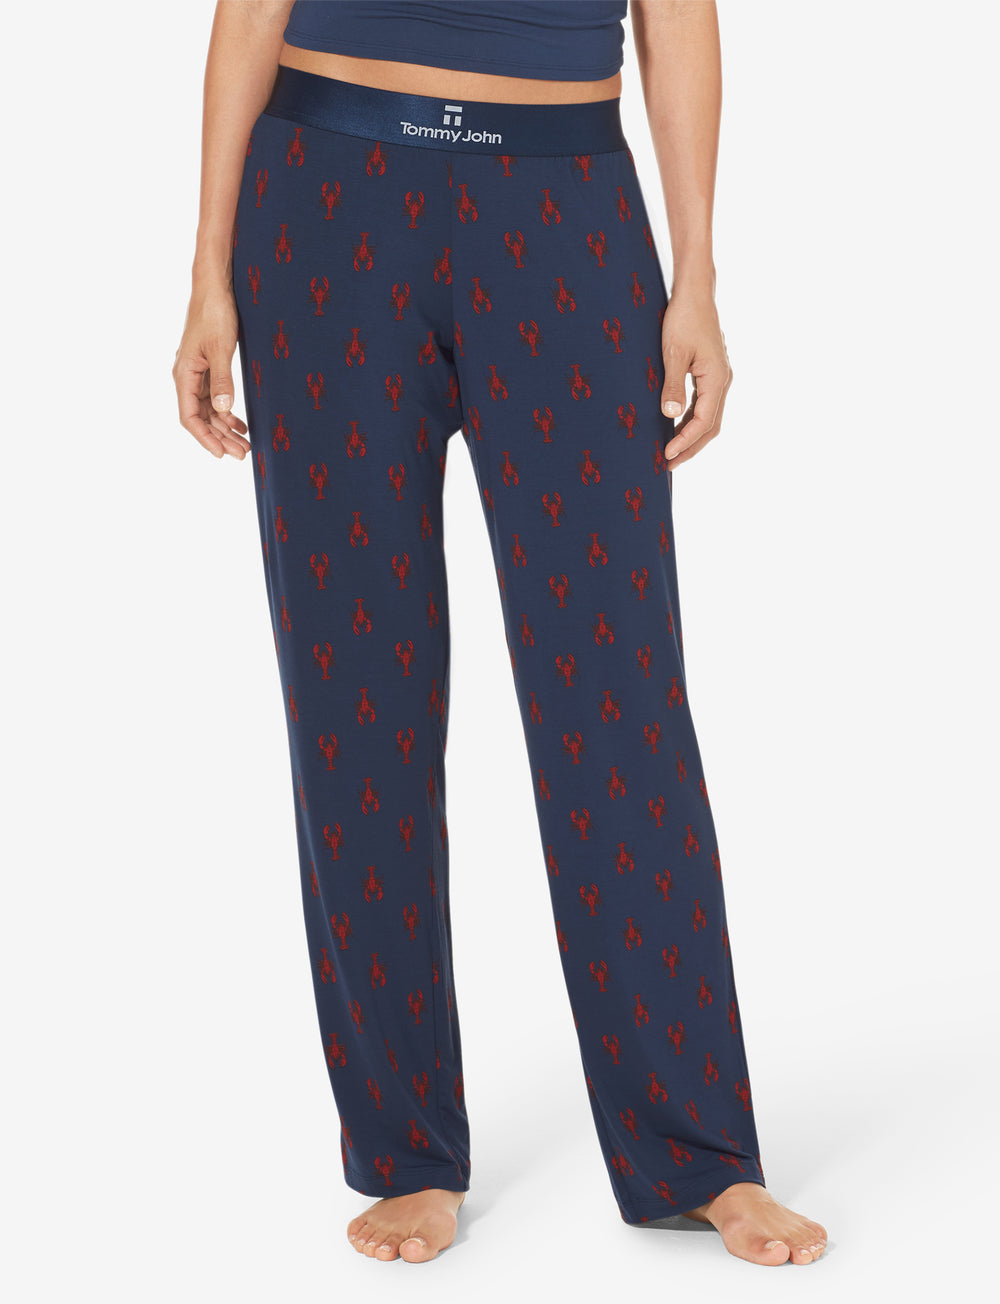 Women's Second Skin Lobster Print Lounge Pant Details Image